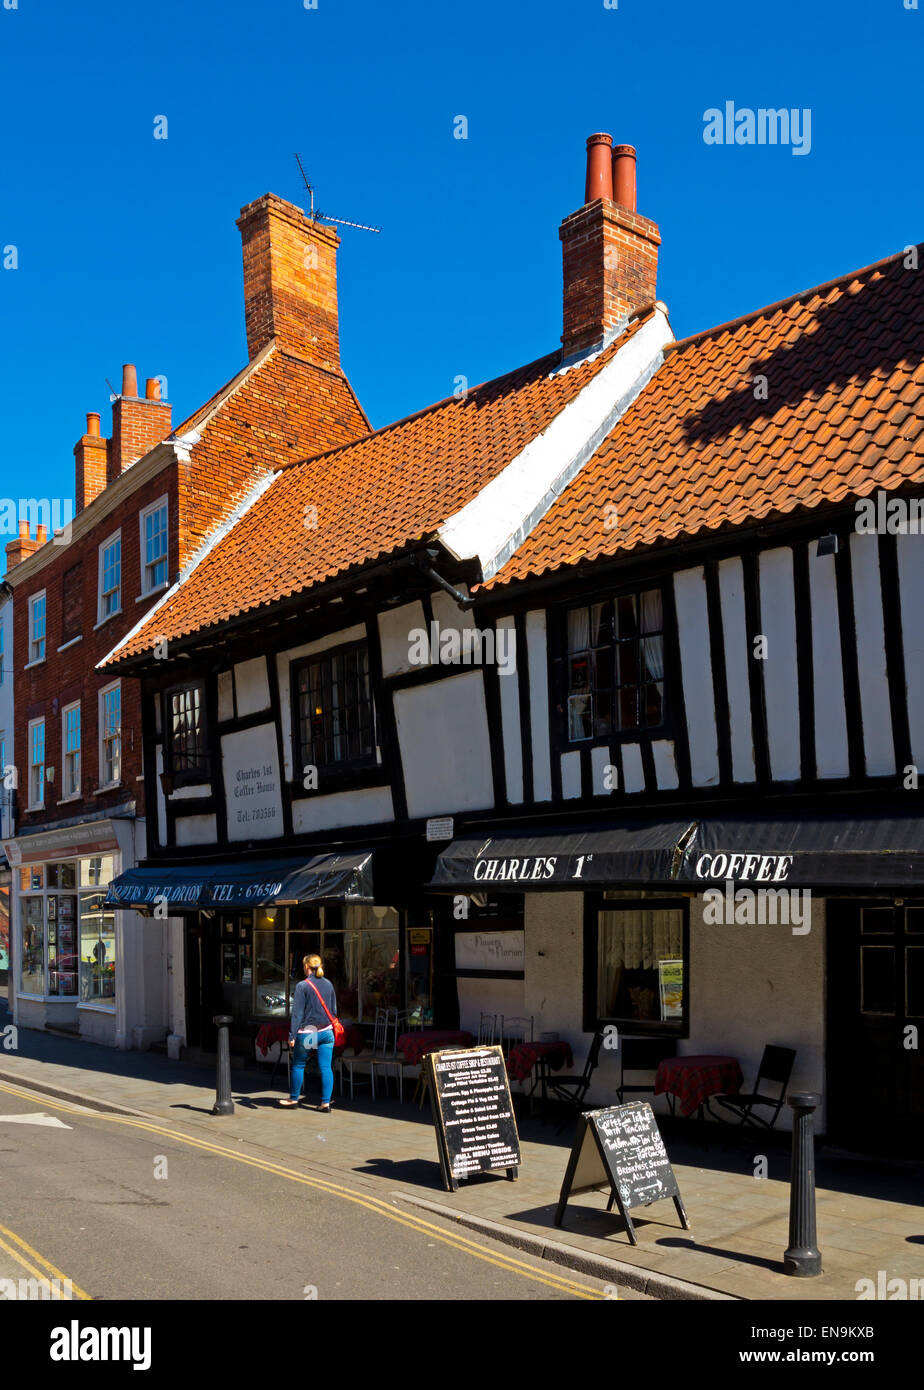 Half timbered buildings in Newark on Trent town centre Nottinghamshire England UK - Stock Image